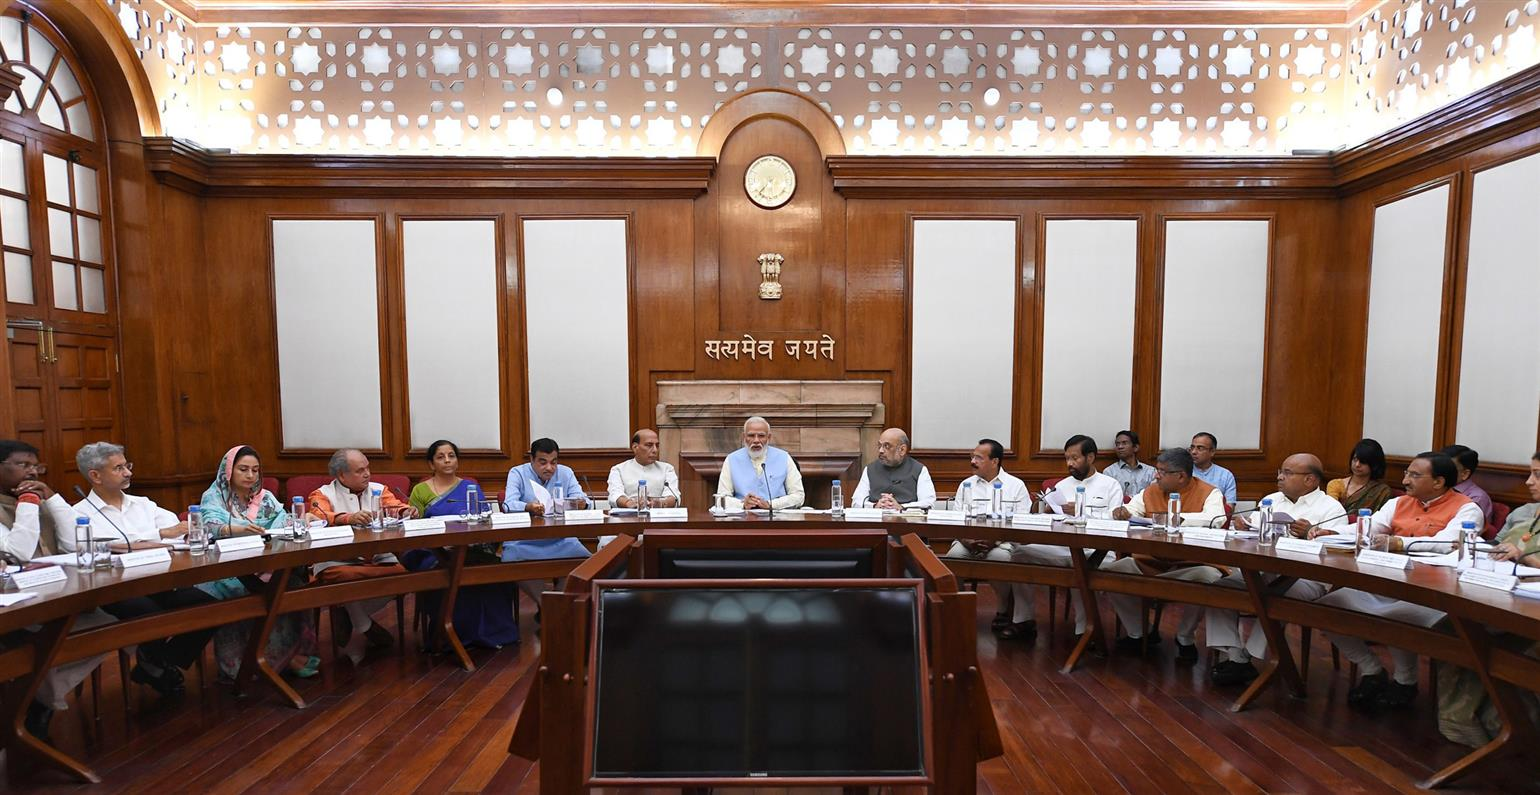 Rajnath Singh now put on 6 Cabinet Committees after reworks